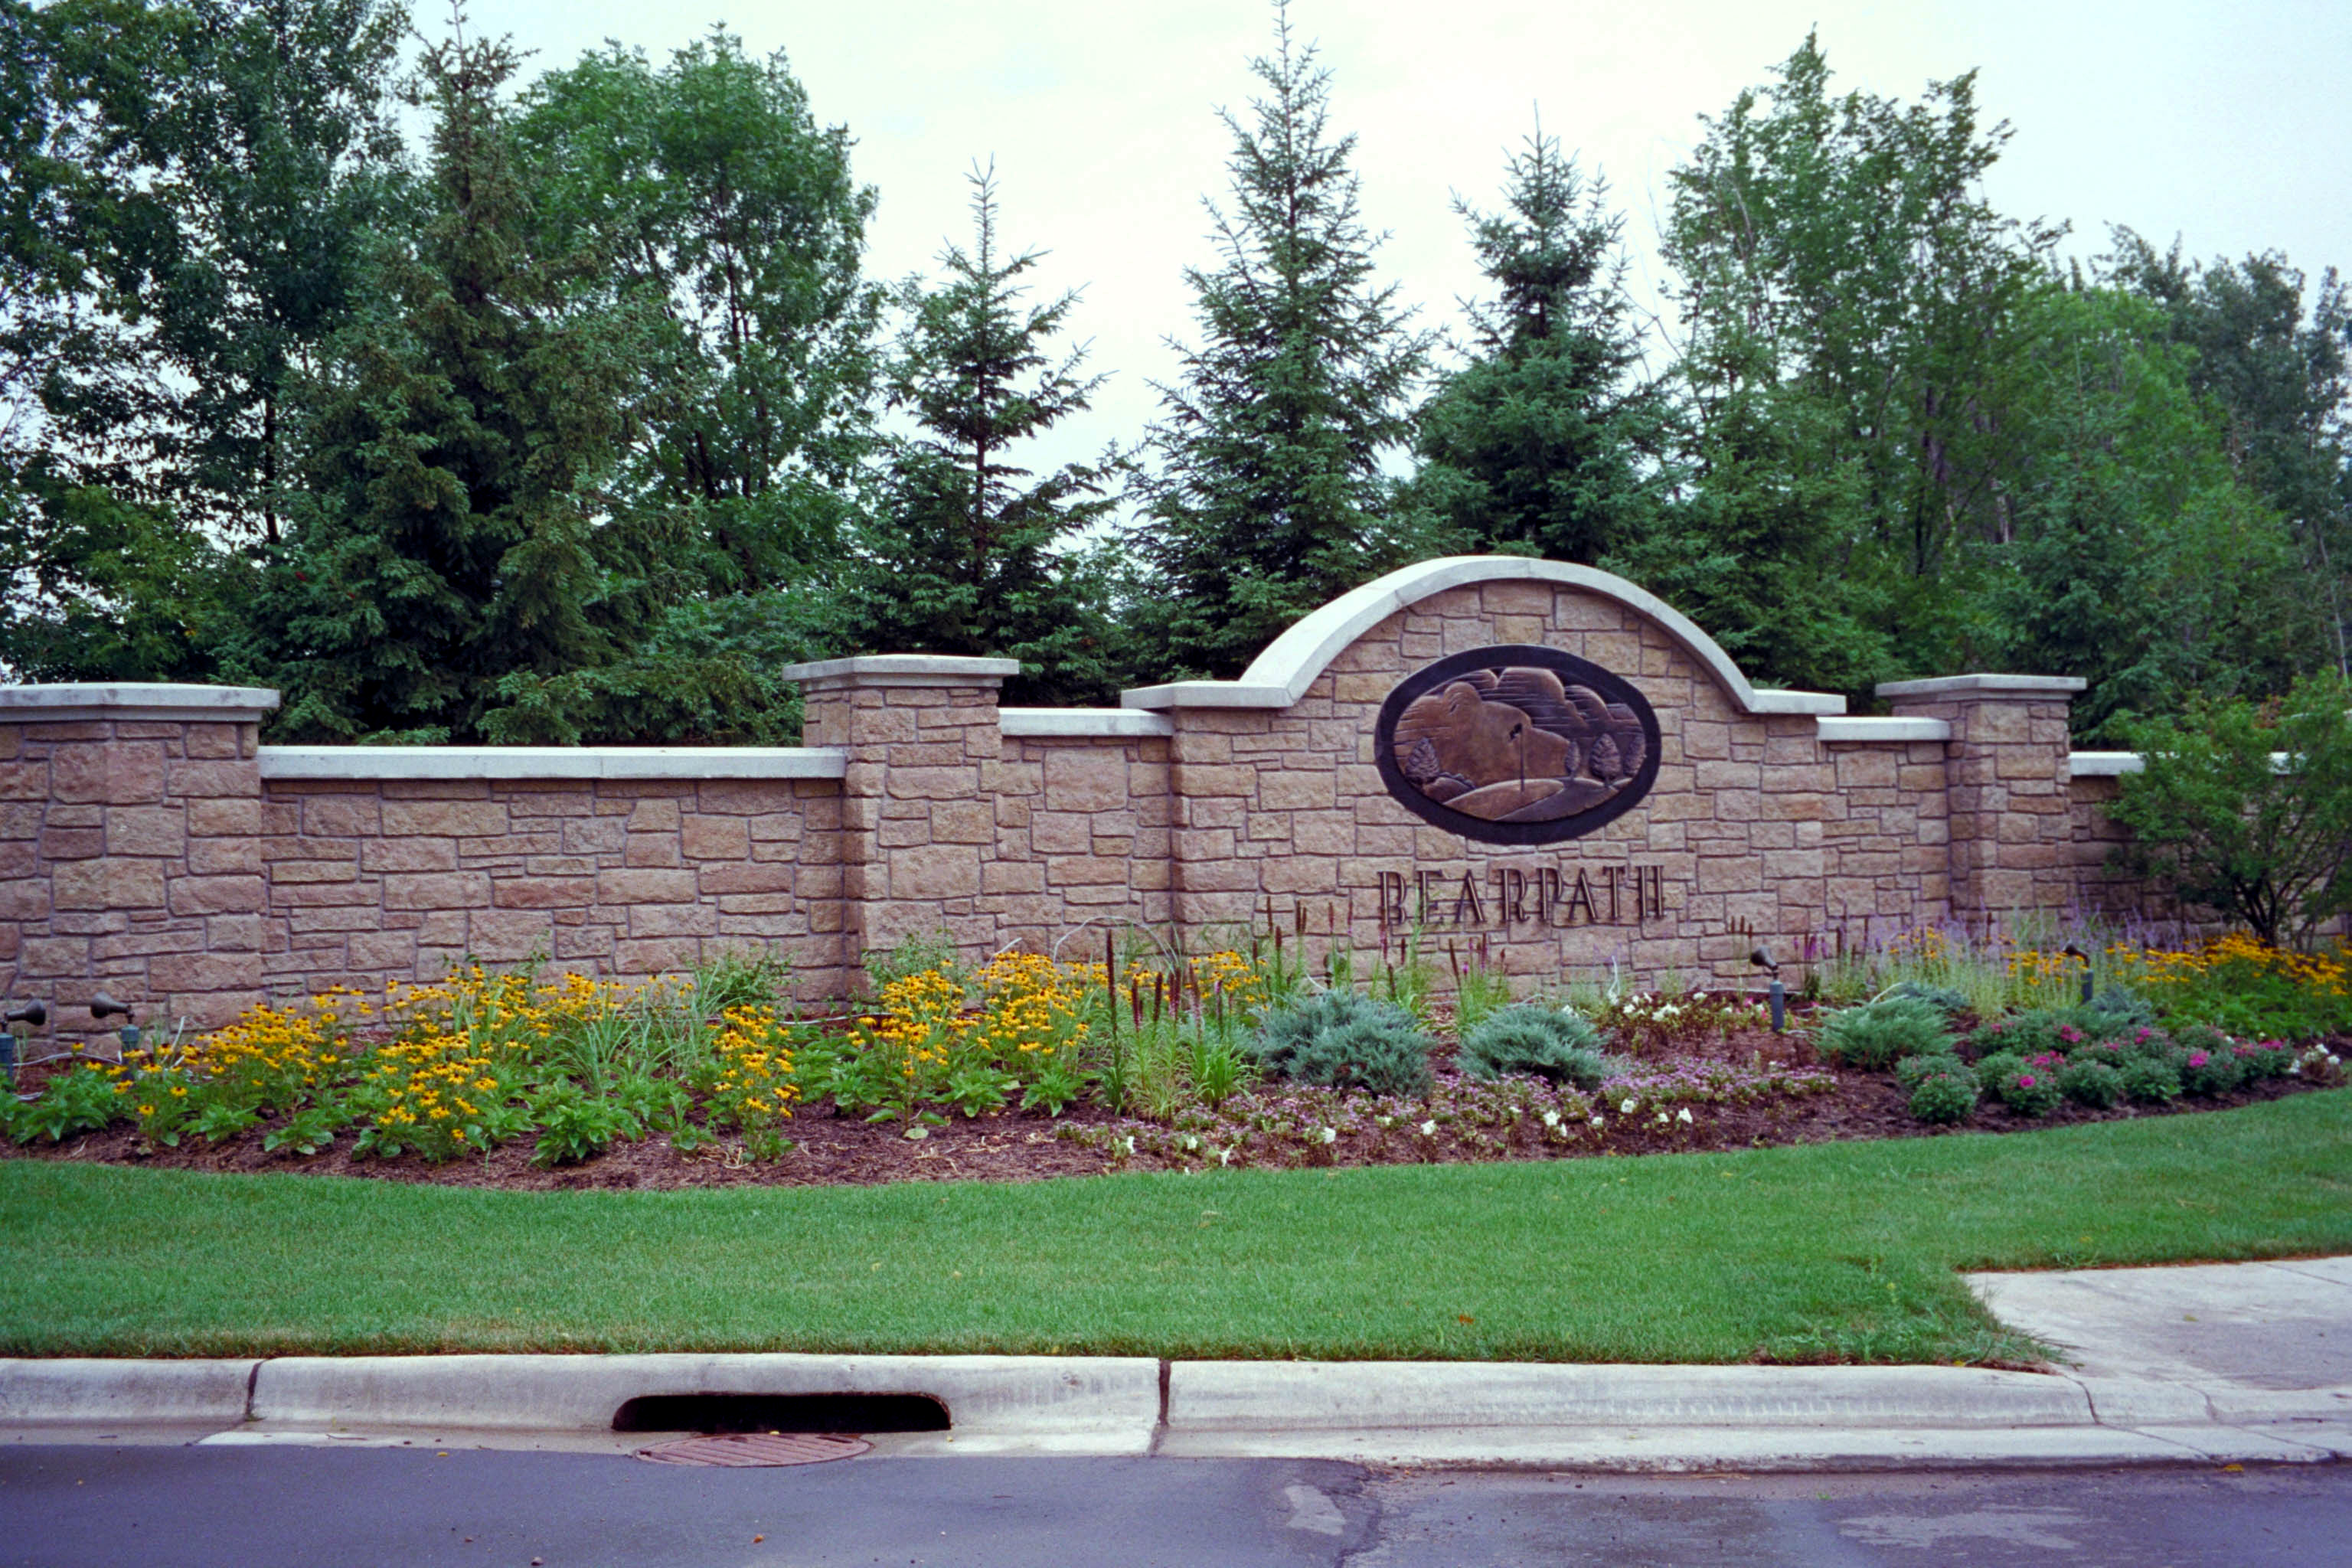 12005-bearpath-coursed-stone-formliner-hq-41